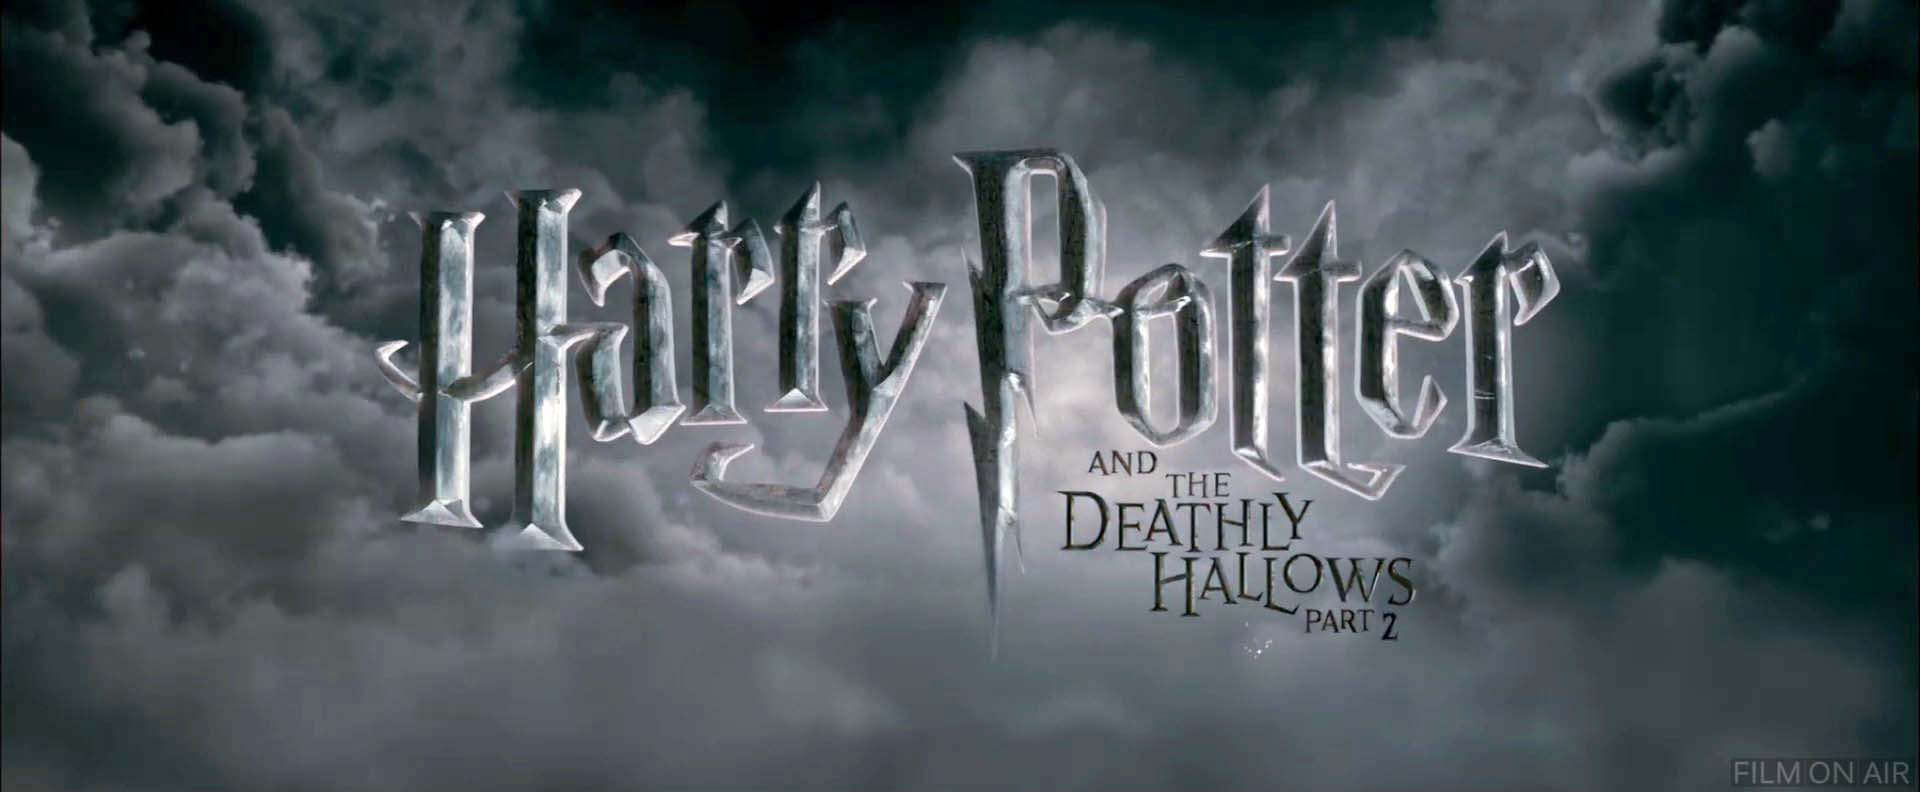 Harry Potter 7 Part 2 Logo in Harry Potter and the Deathly ...